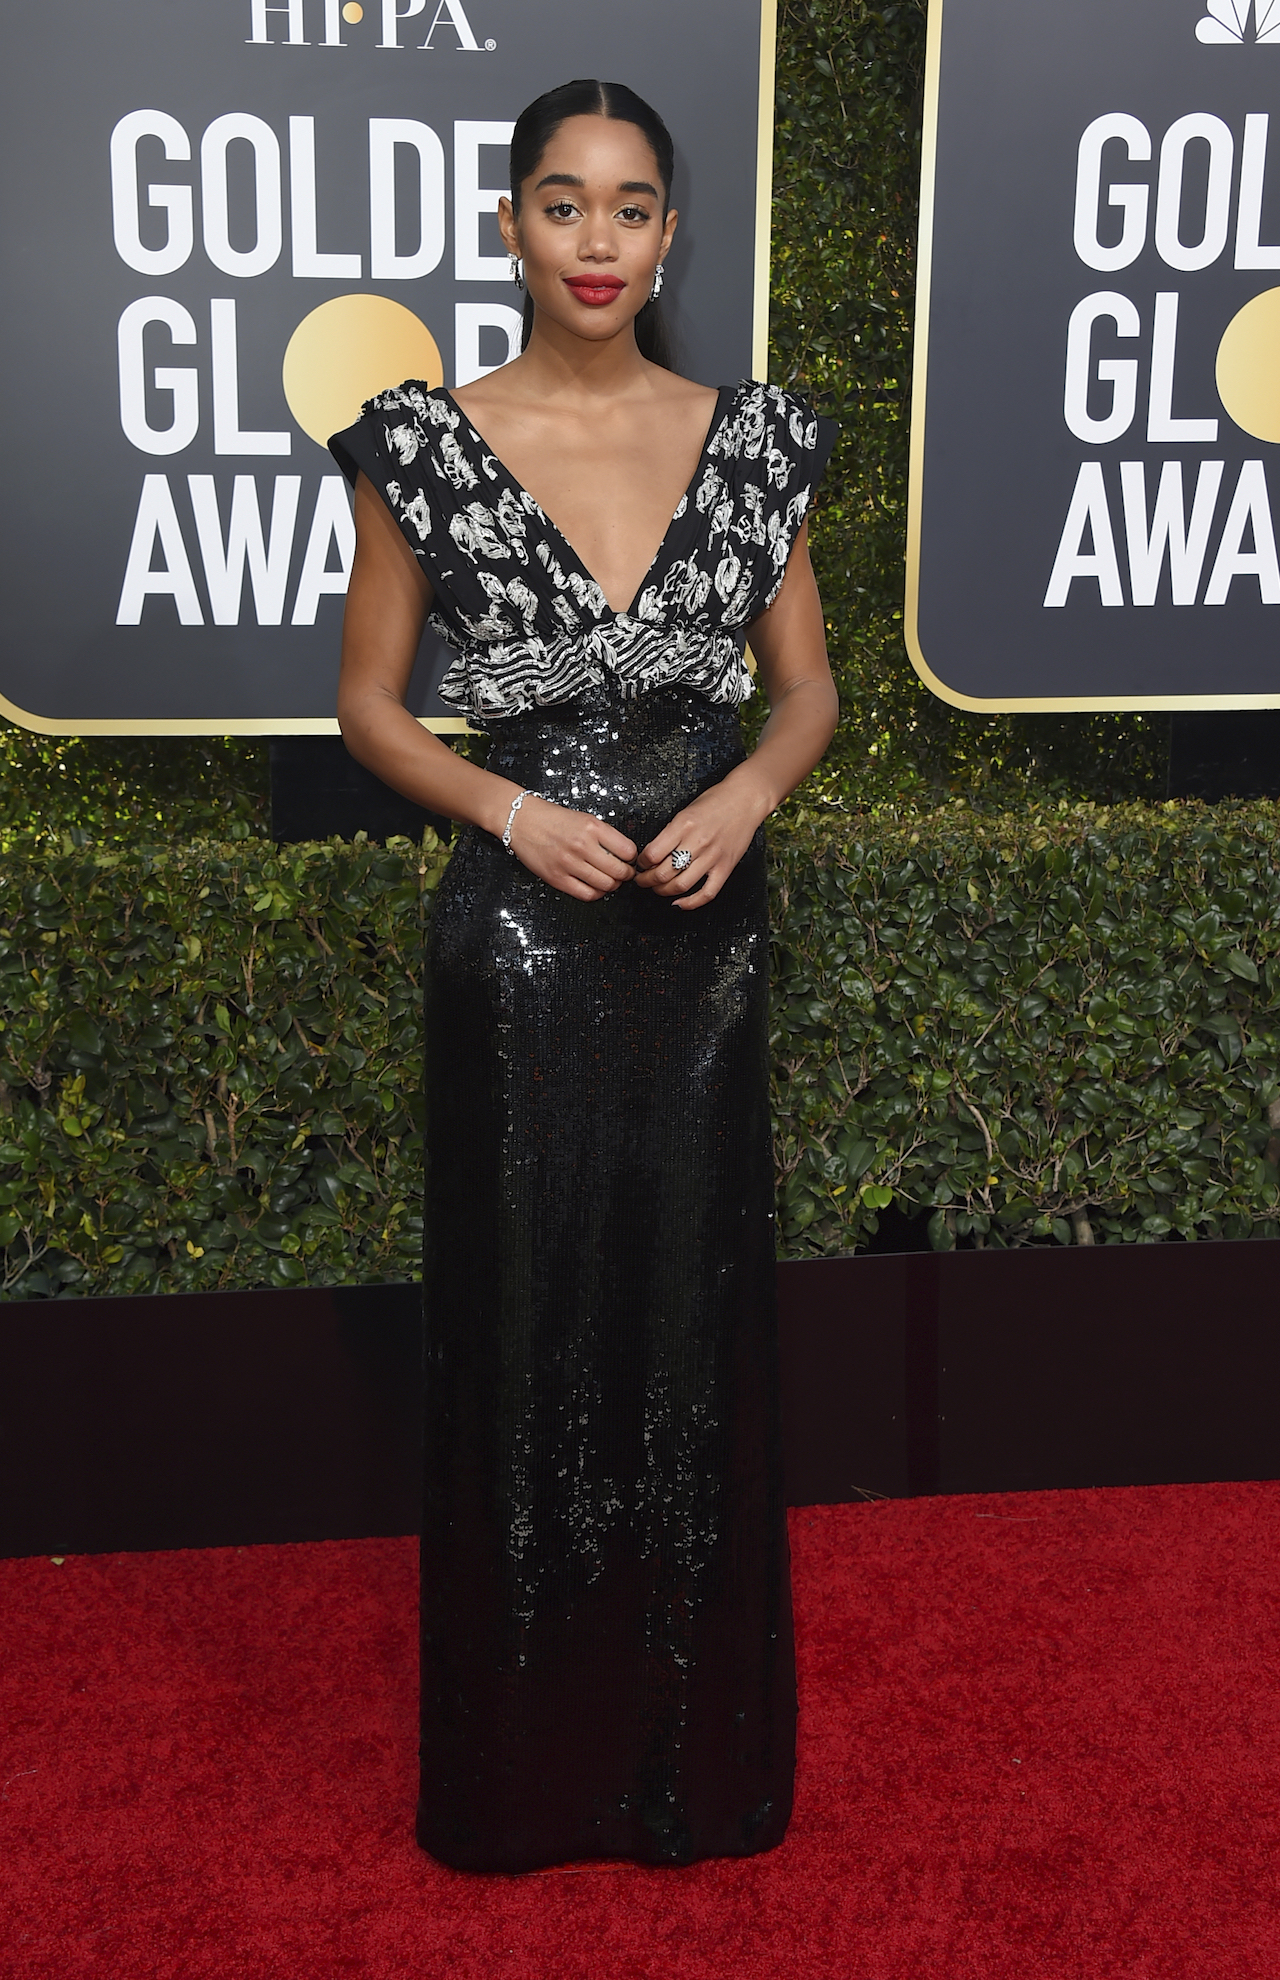 "<div class=""meta image-caption""><div class=""origin-logo origin-image ap""><span>AP</span></div><span class=""caption-text"">Laura Harrier arrives at the 76th annual Golden Globe Awards at the Beverly Hilton Hotel on Sunday, Jan. 6, 2019, in Beverly Hills, Calif. (Jordan Strauss/Invision/AP)</span></div>"